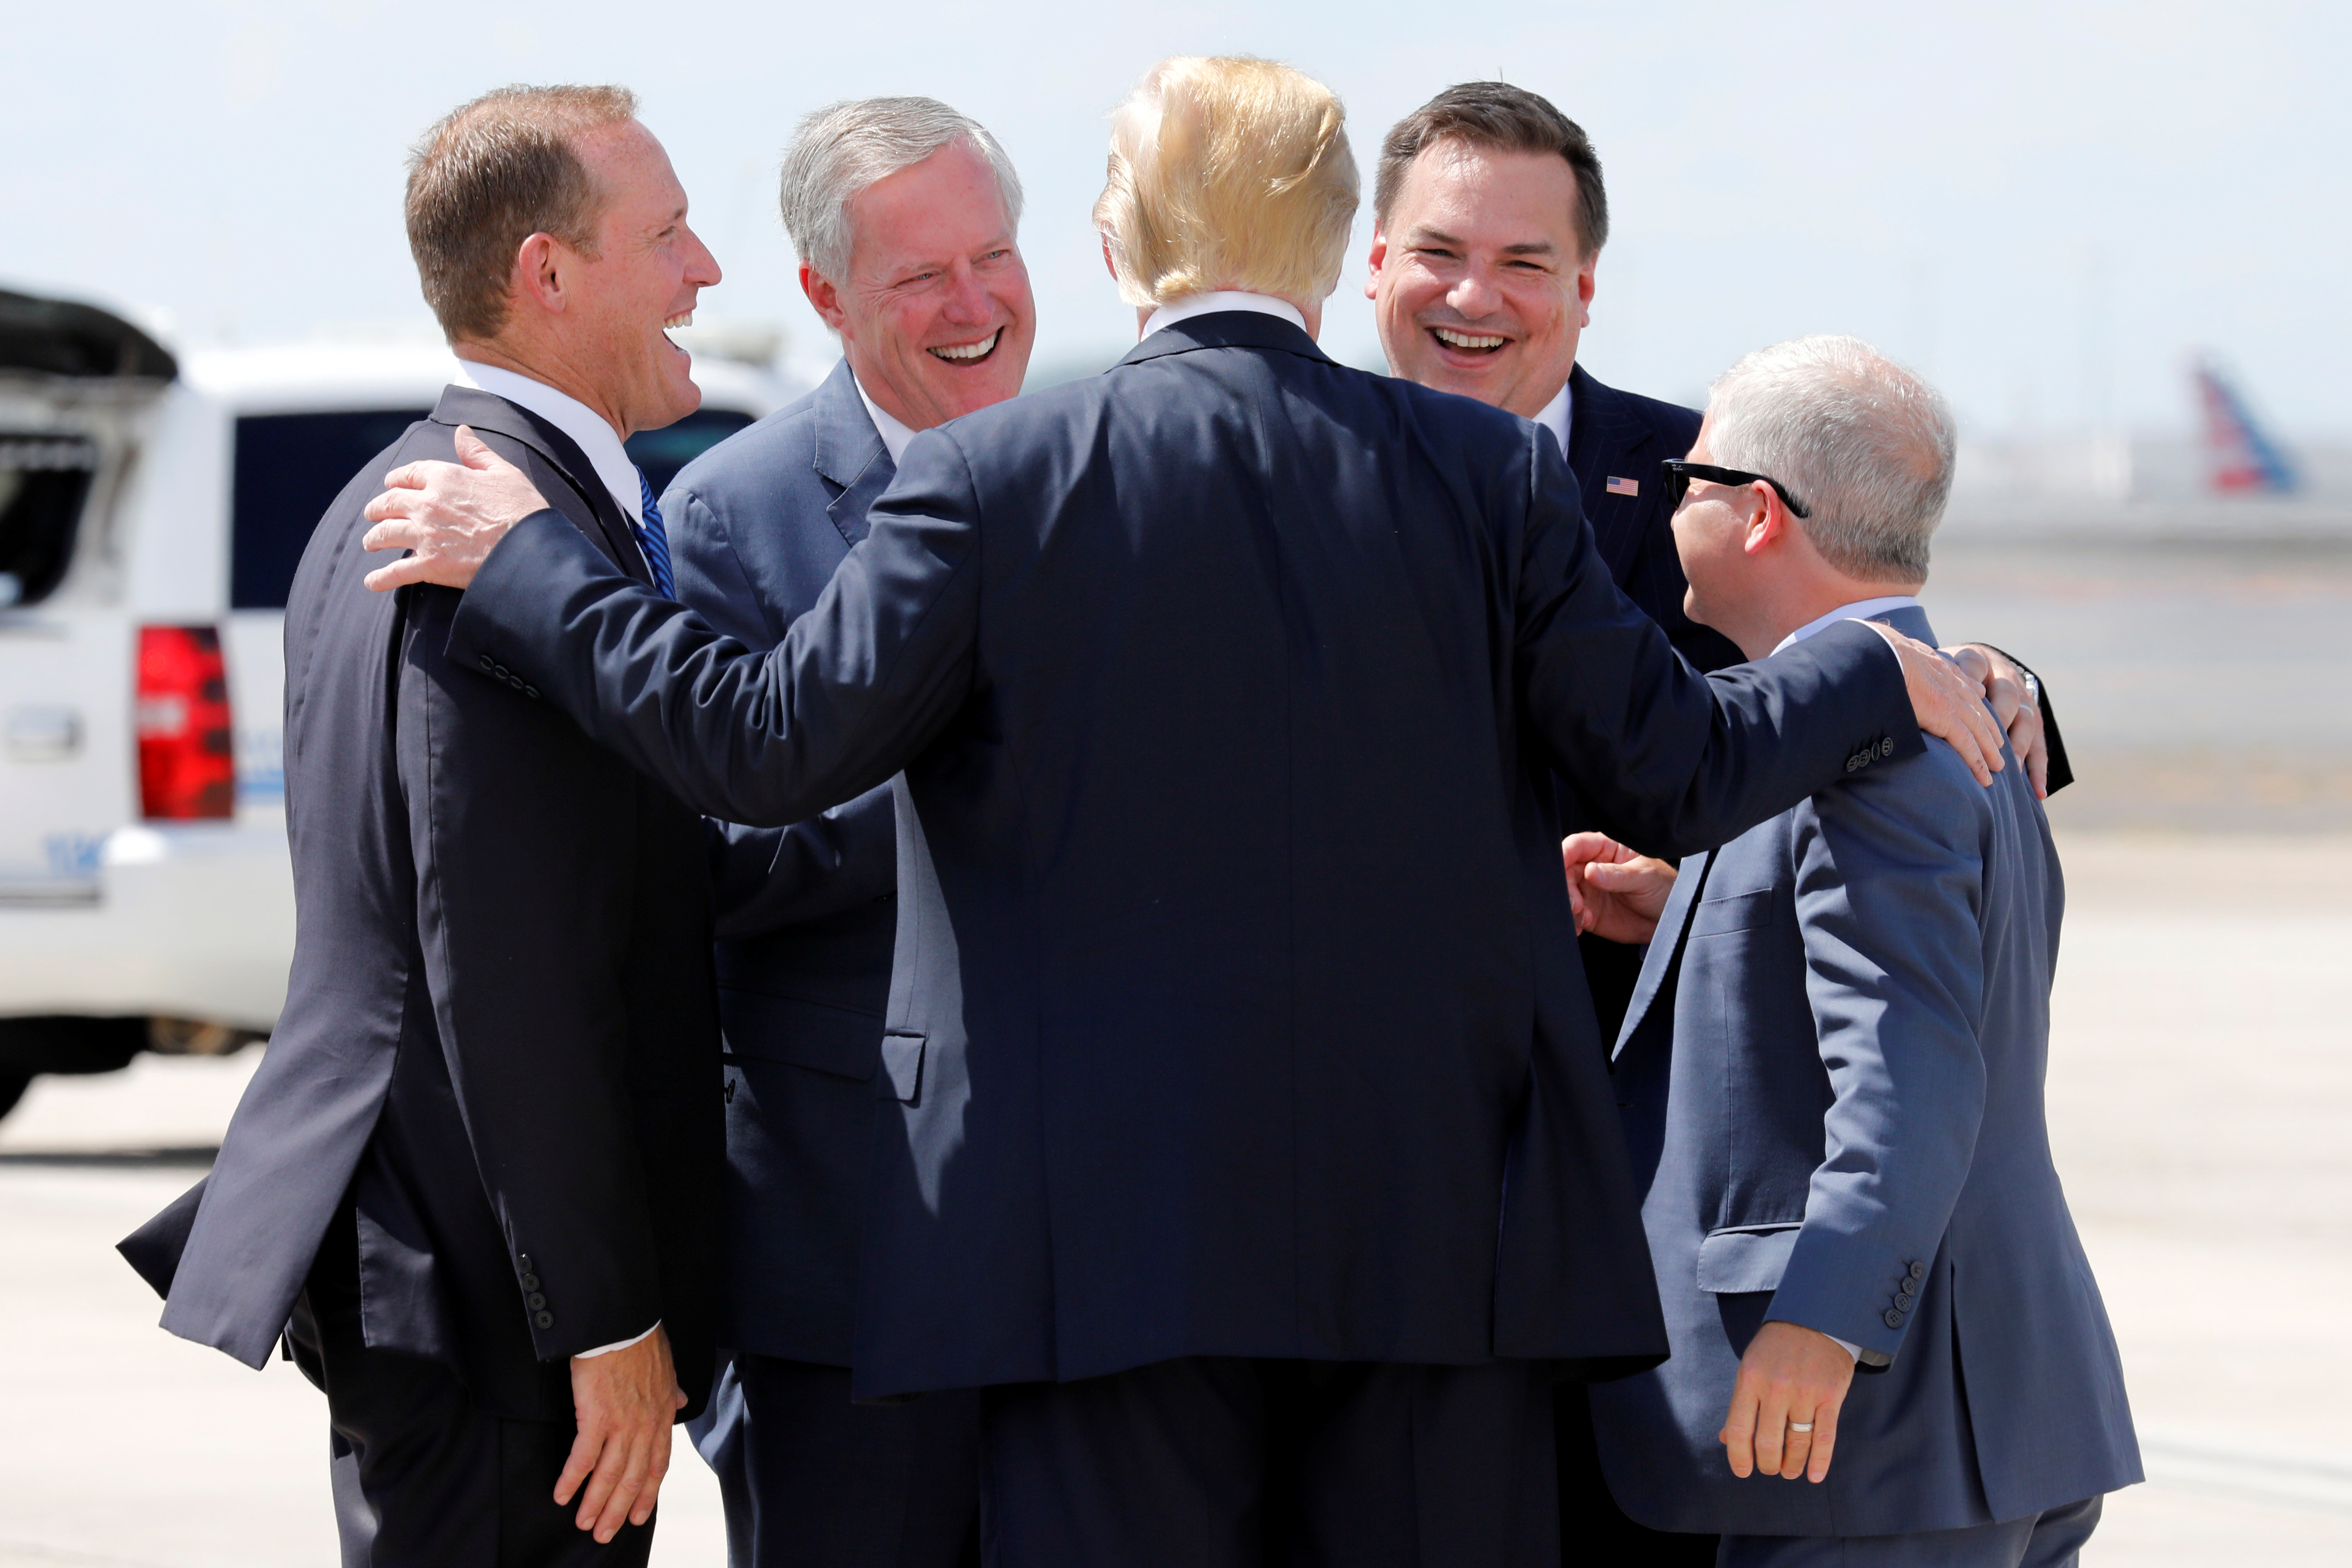 U.S. President Donald Trump greets Republican Representatives from North Carolina Ted Budd (L), Mark Meadows (2nd L) and Richard Hudson (2nd R) upon his arrival at Charlotte Douglas International Airport in Charlotte, NC, U.S., August 31, 2018. REUTERS/Yuri Gripas - RC1EBA34B780